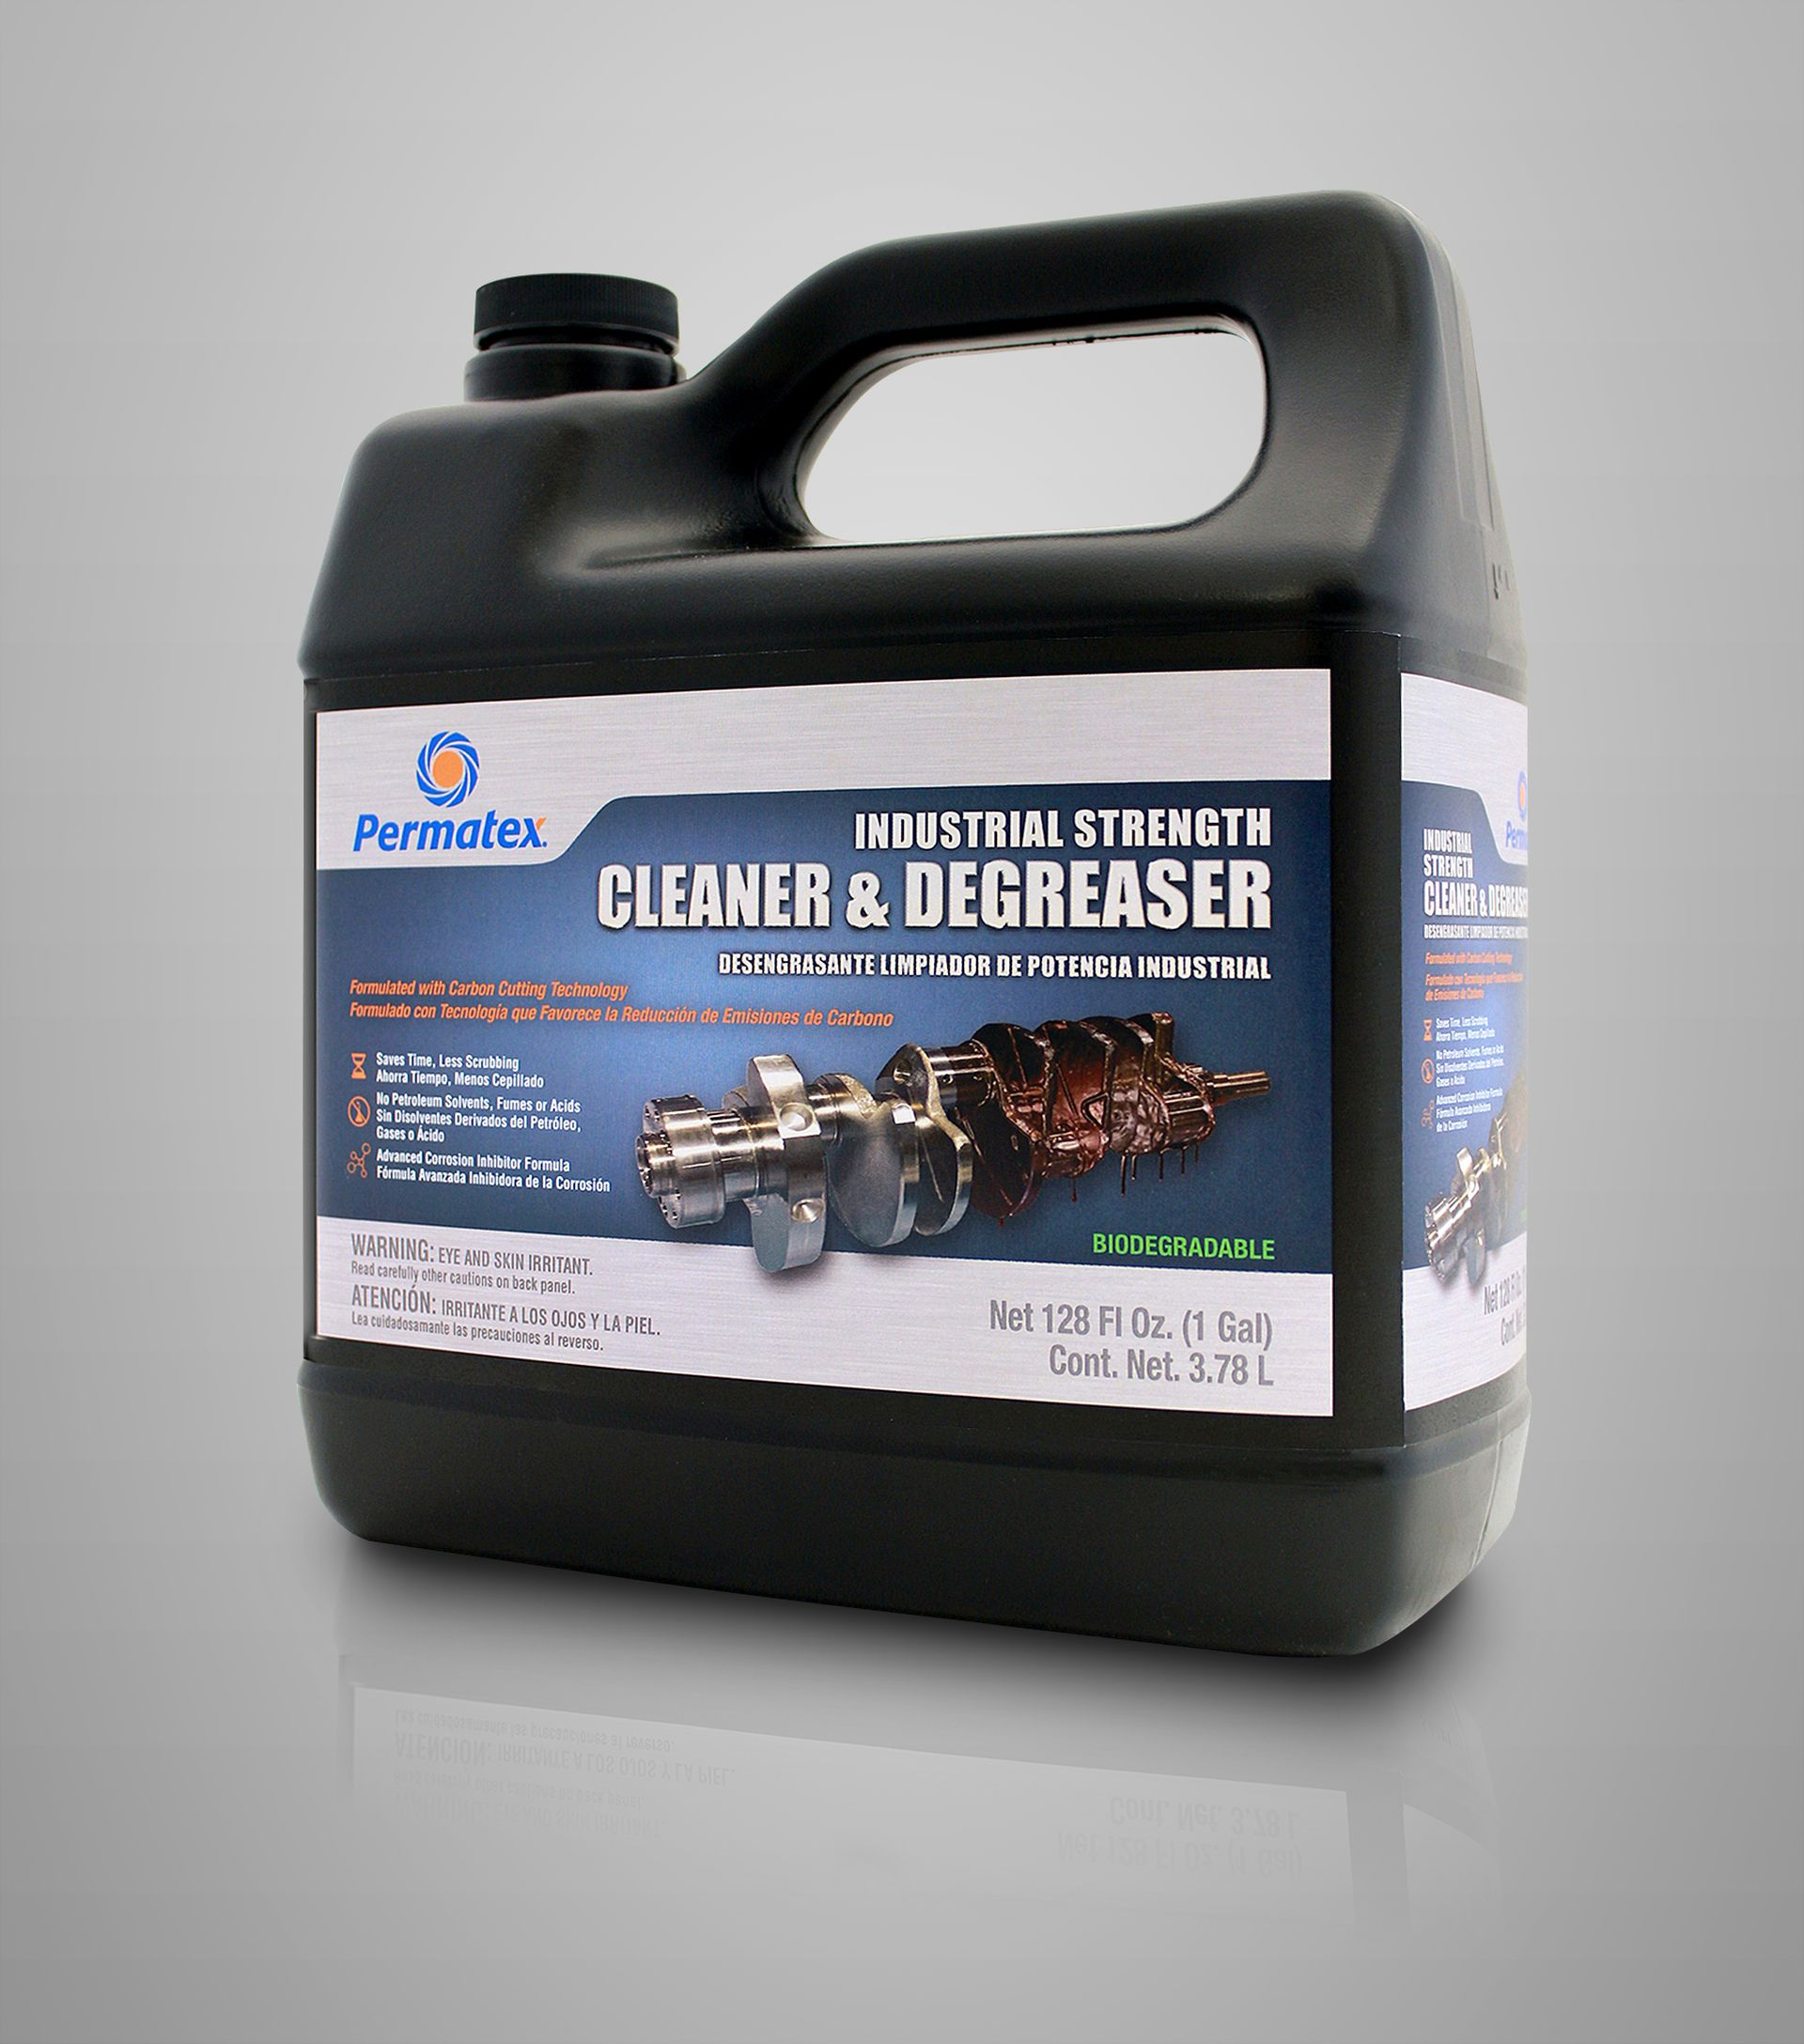 Permatex Industrial Strength Cleaner and Degreaser Is Biodegradable